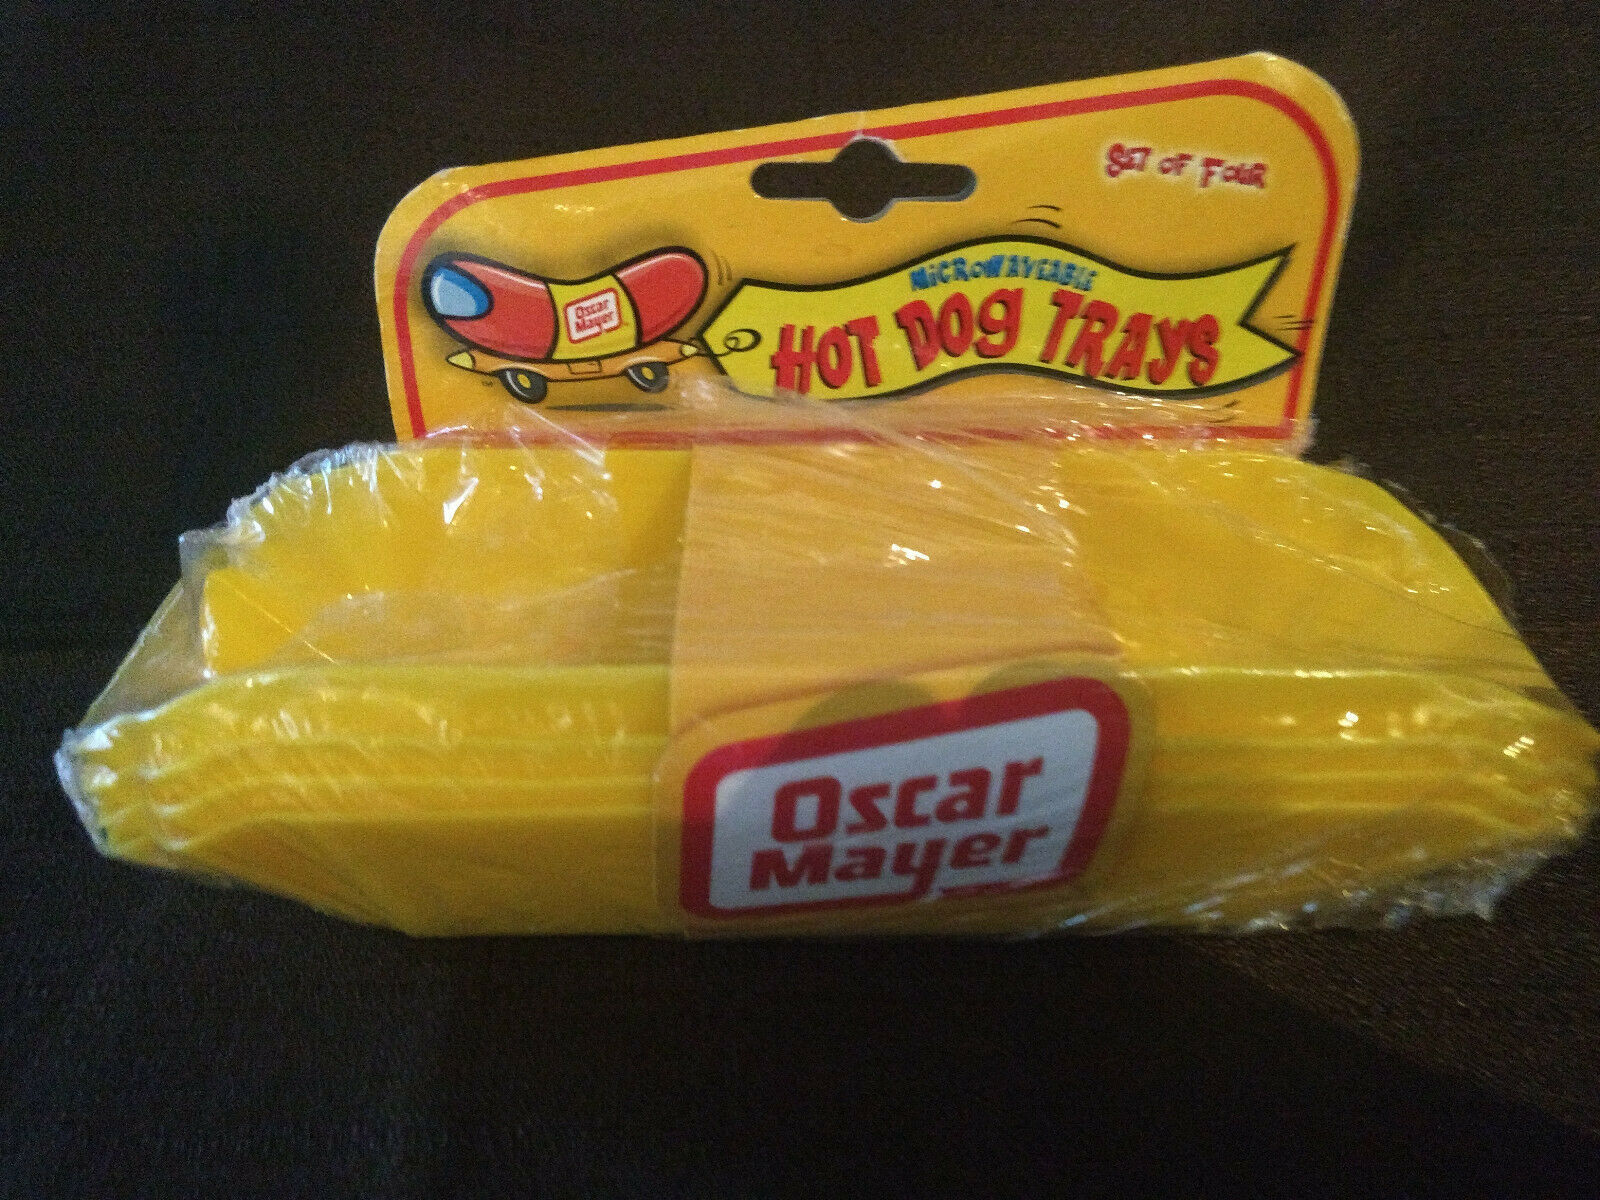 New Rare Collectible Oscar Mayer Wiener Hot Dog Tray Holders Set of 4 Yellow